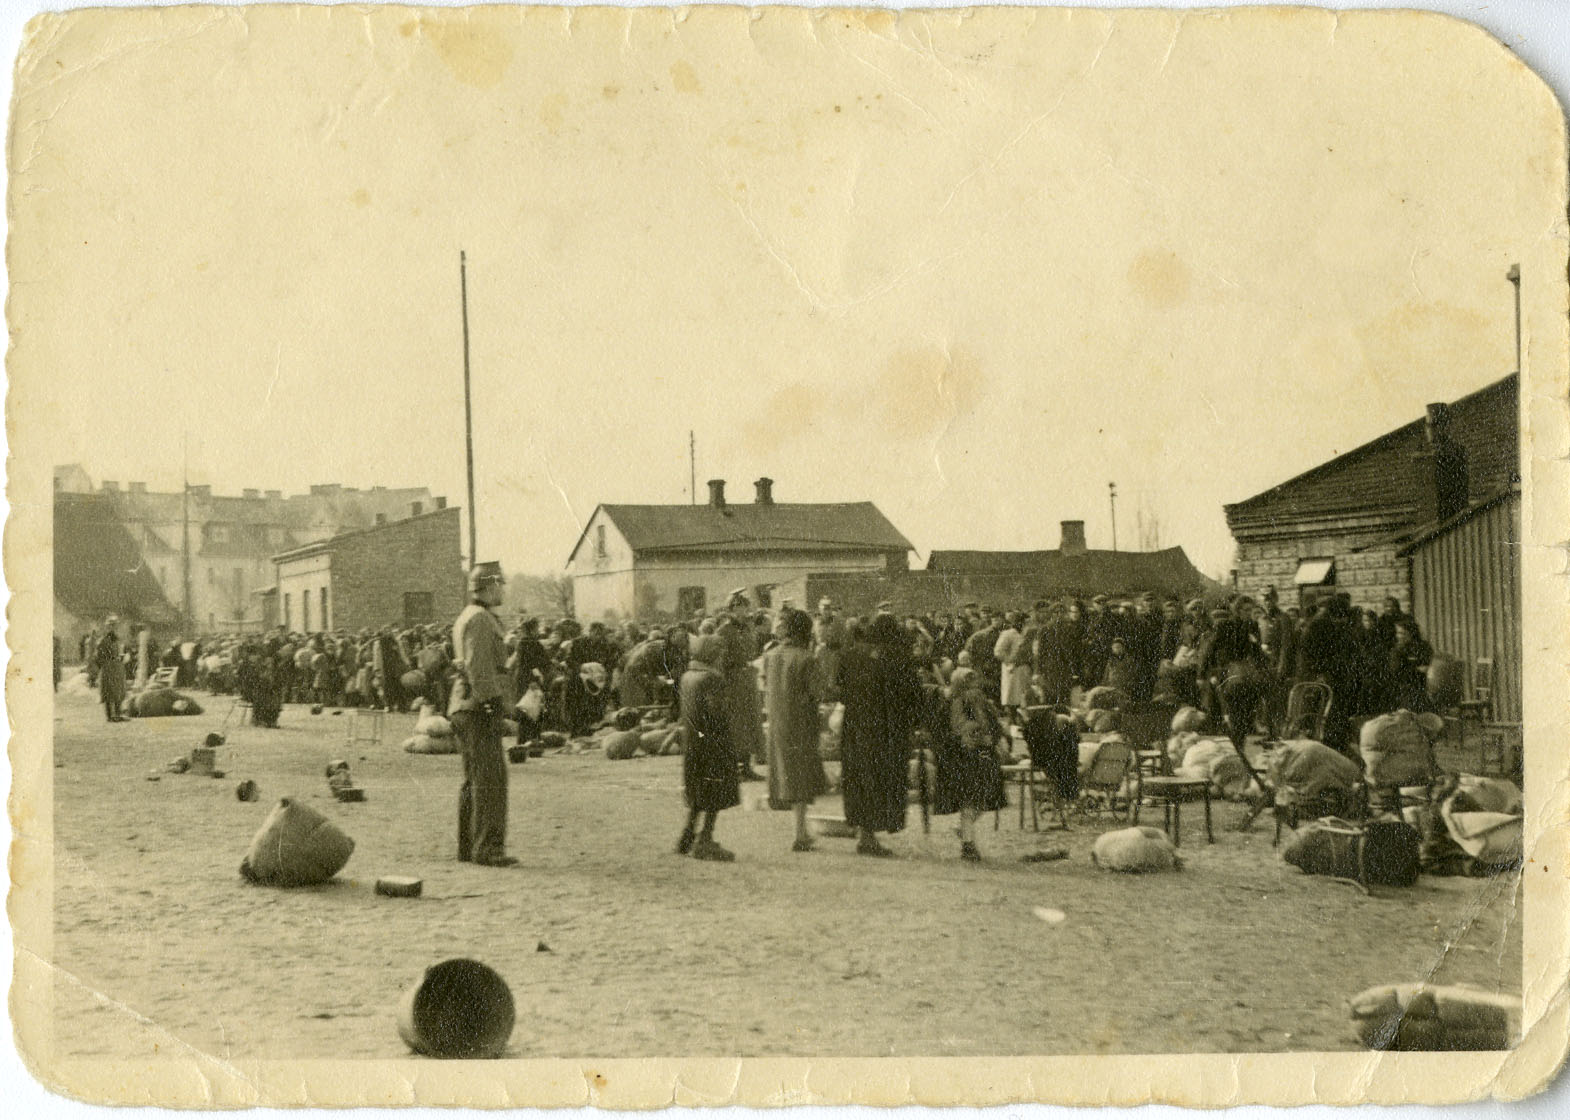 They also forced Jews to move into a ghetto to await their deportation to the Belzec killing centre. Ghetto residents who were selected for forced labour were sent to the Majdanek camp outside to the city.